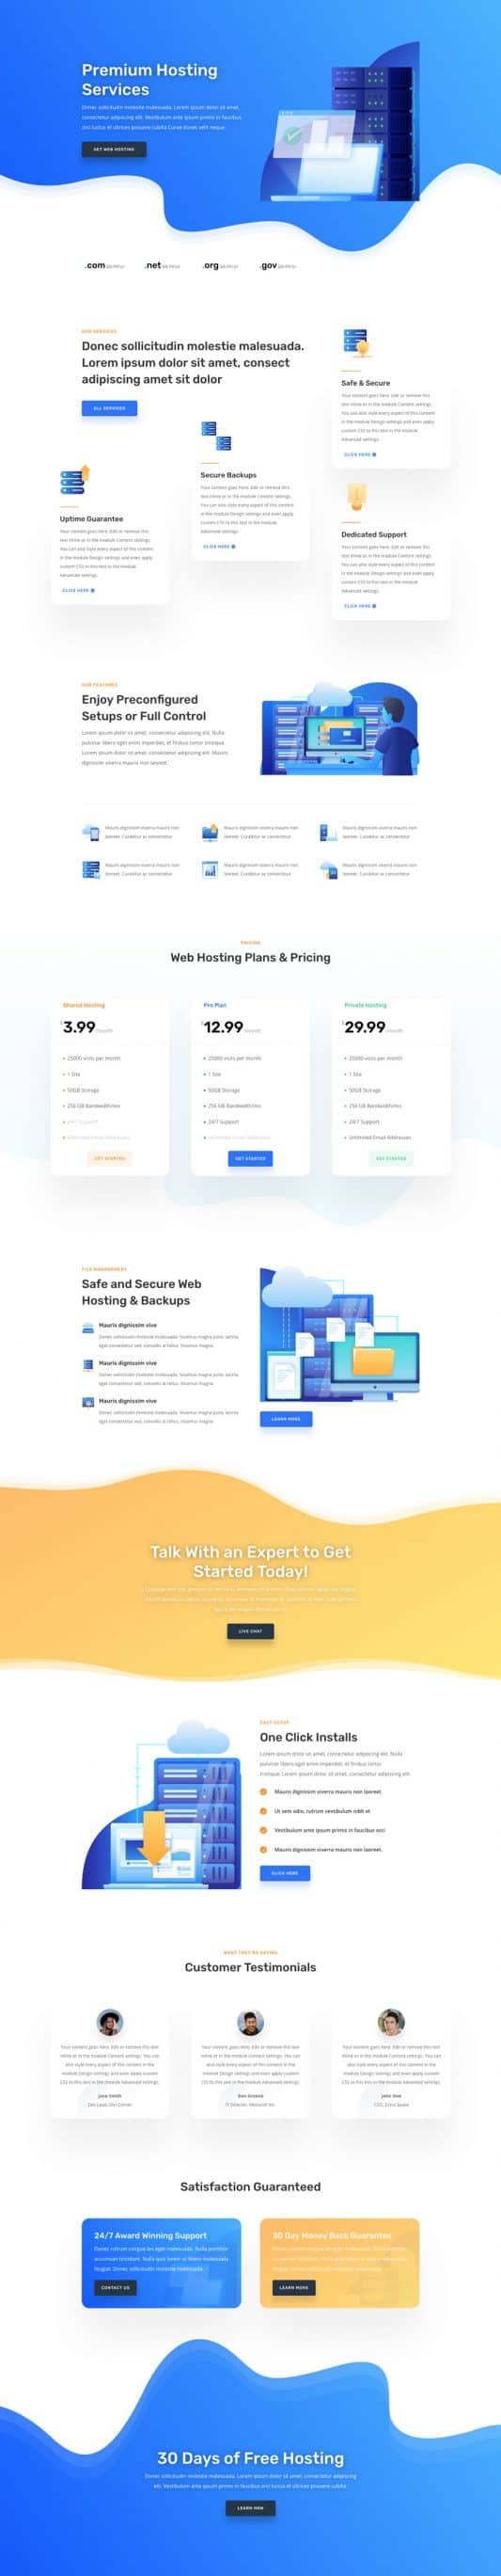 The Hosting Company Page Style: Homepage Design 1